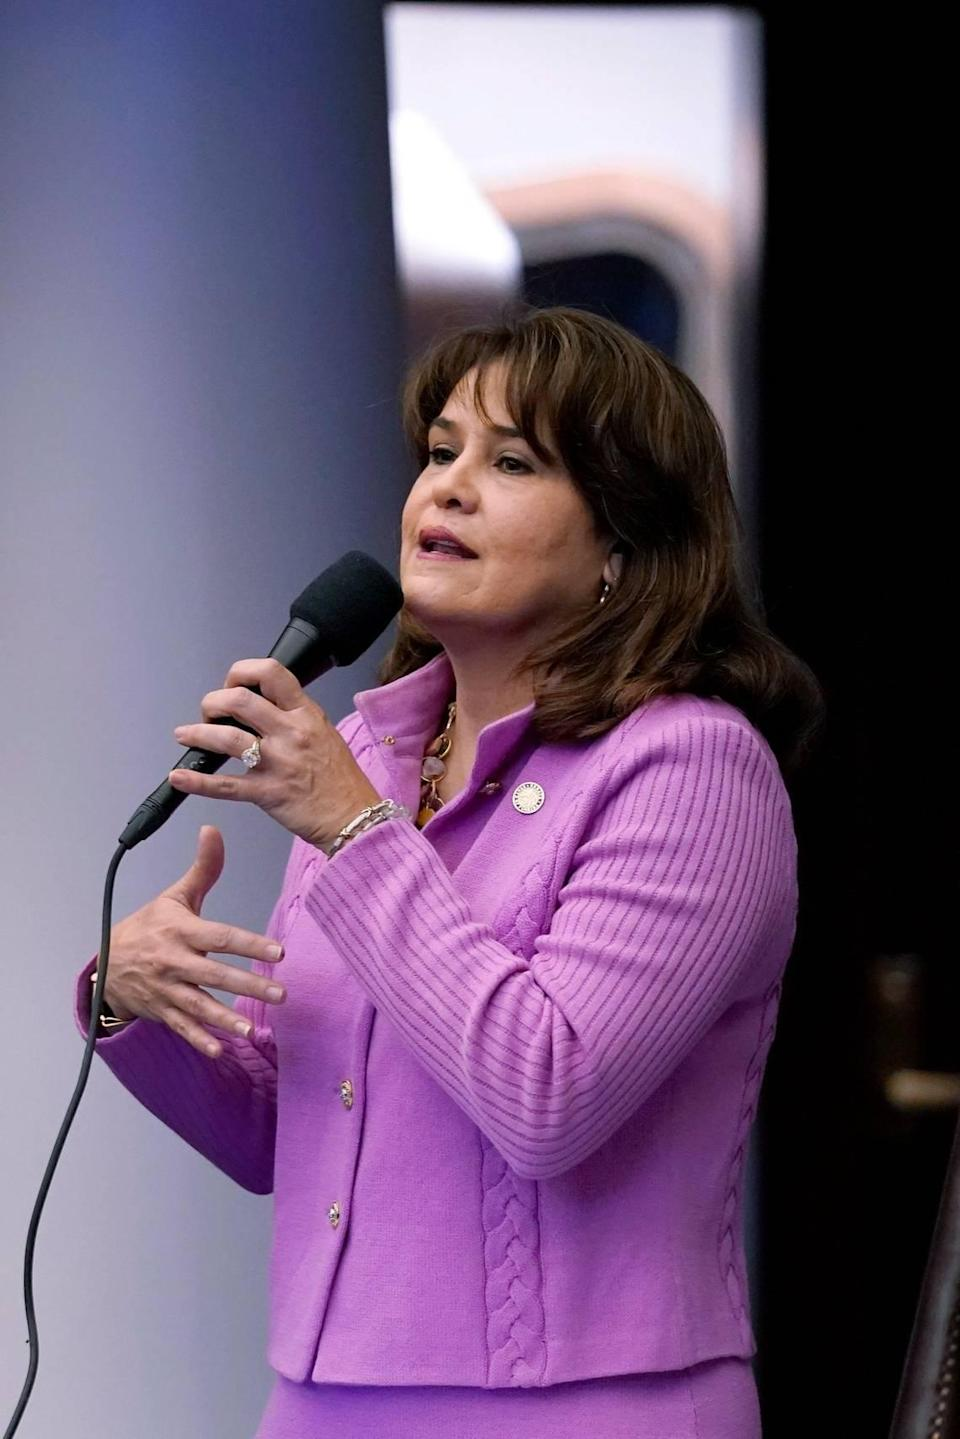 Florida Sen. Annette Taddeo speaks during a legislative session, Friday, April 30, 2021, at the Capitol in Tallahassee, Fla.